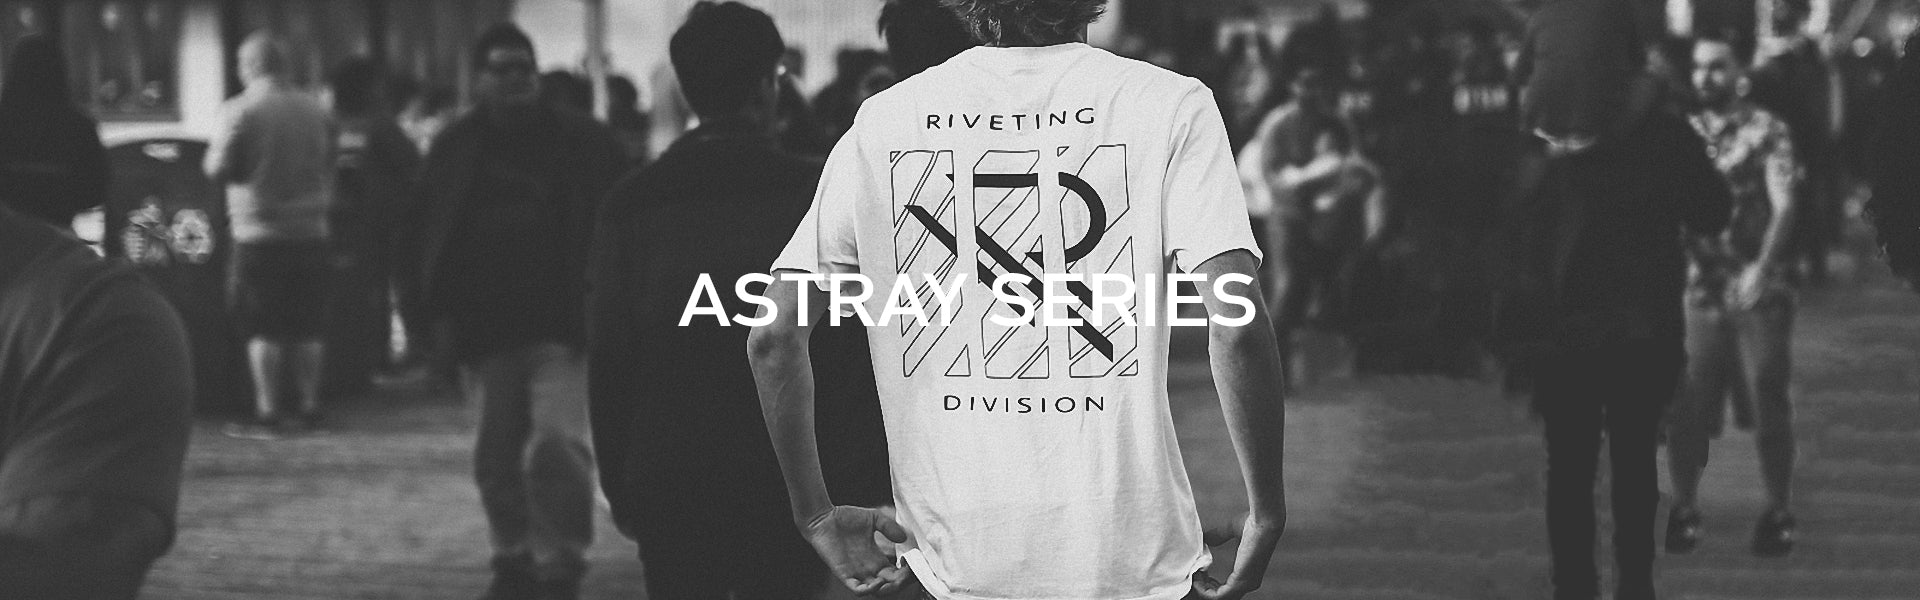 Astray Series